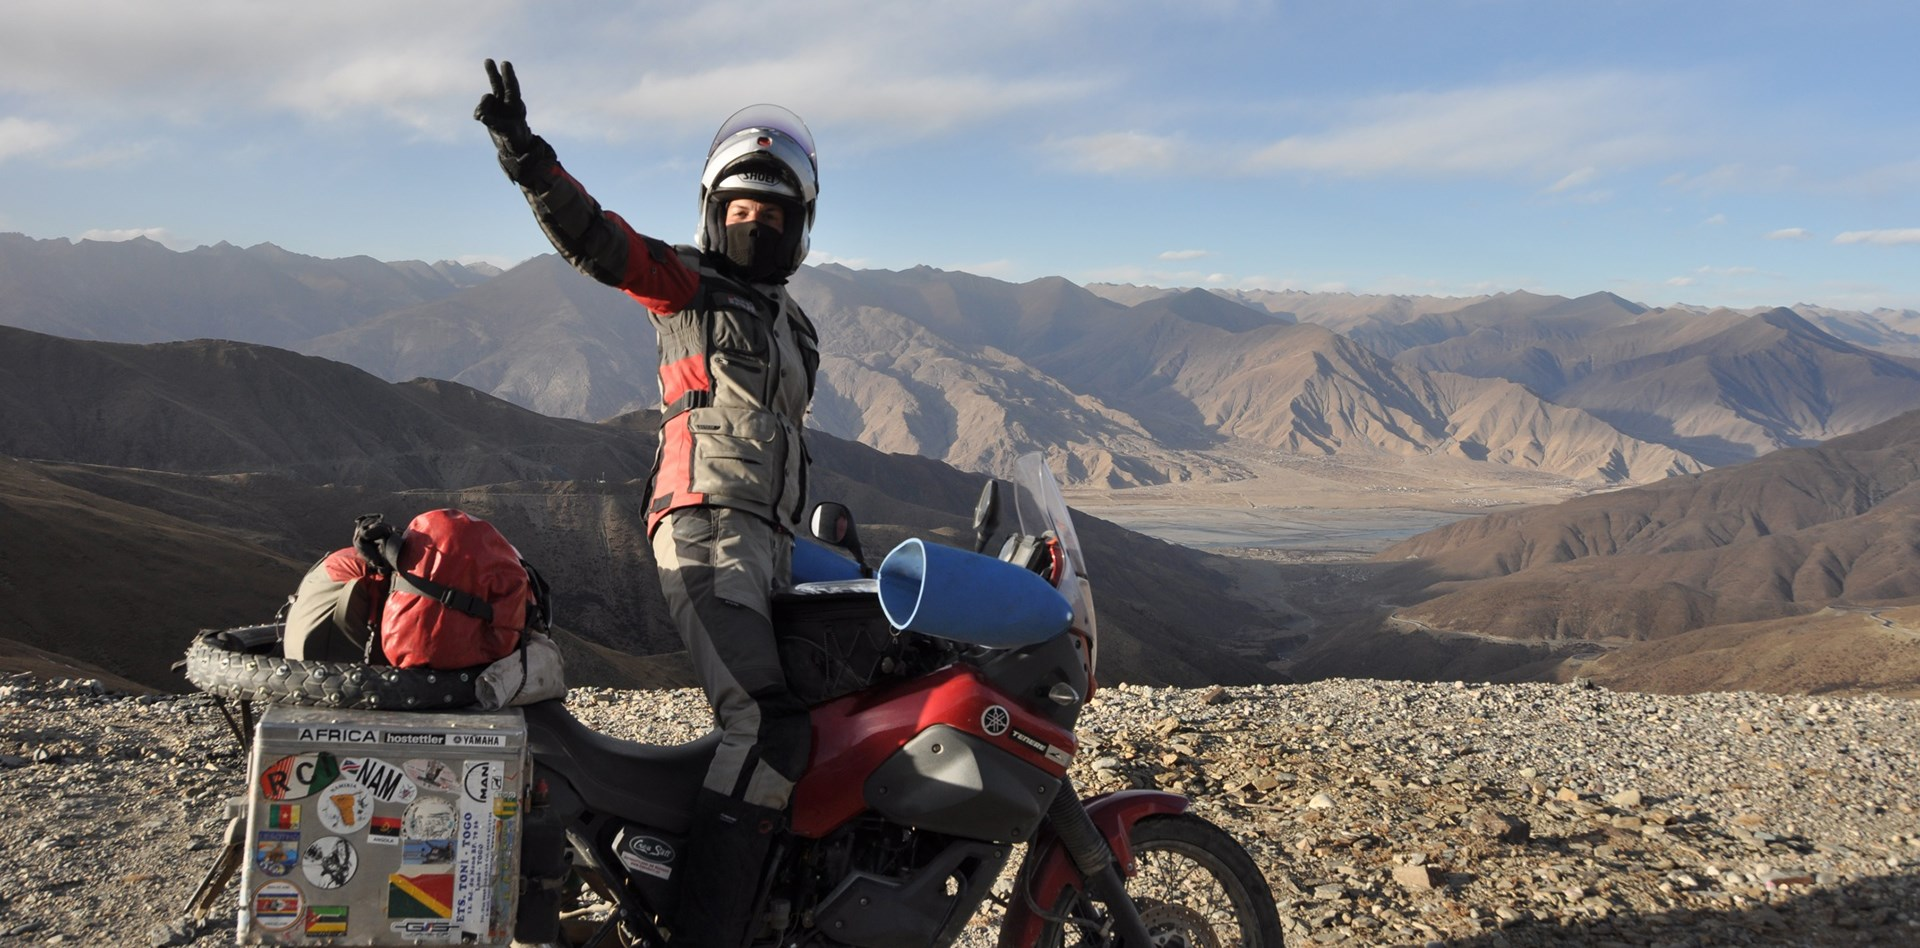 Self Drive Tour over Tibet and along Silk Road through China to Kyrgyzstan